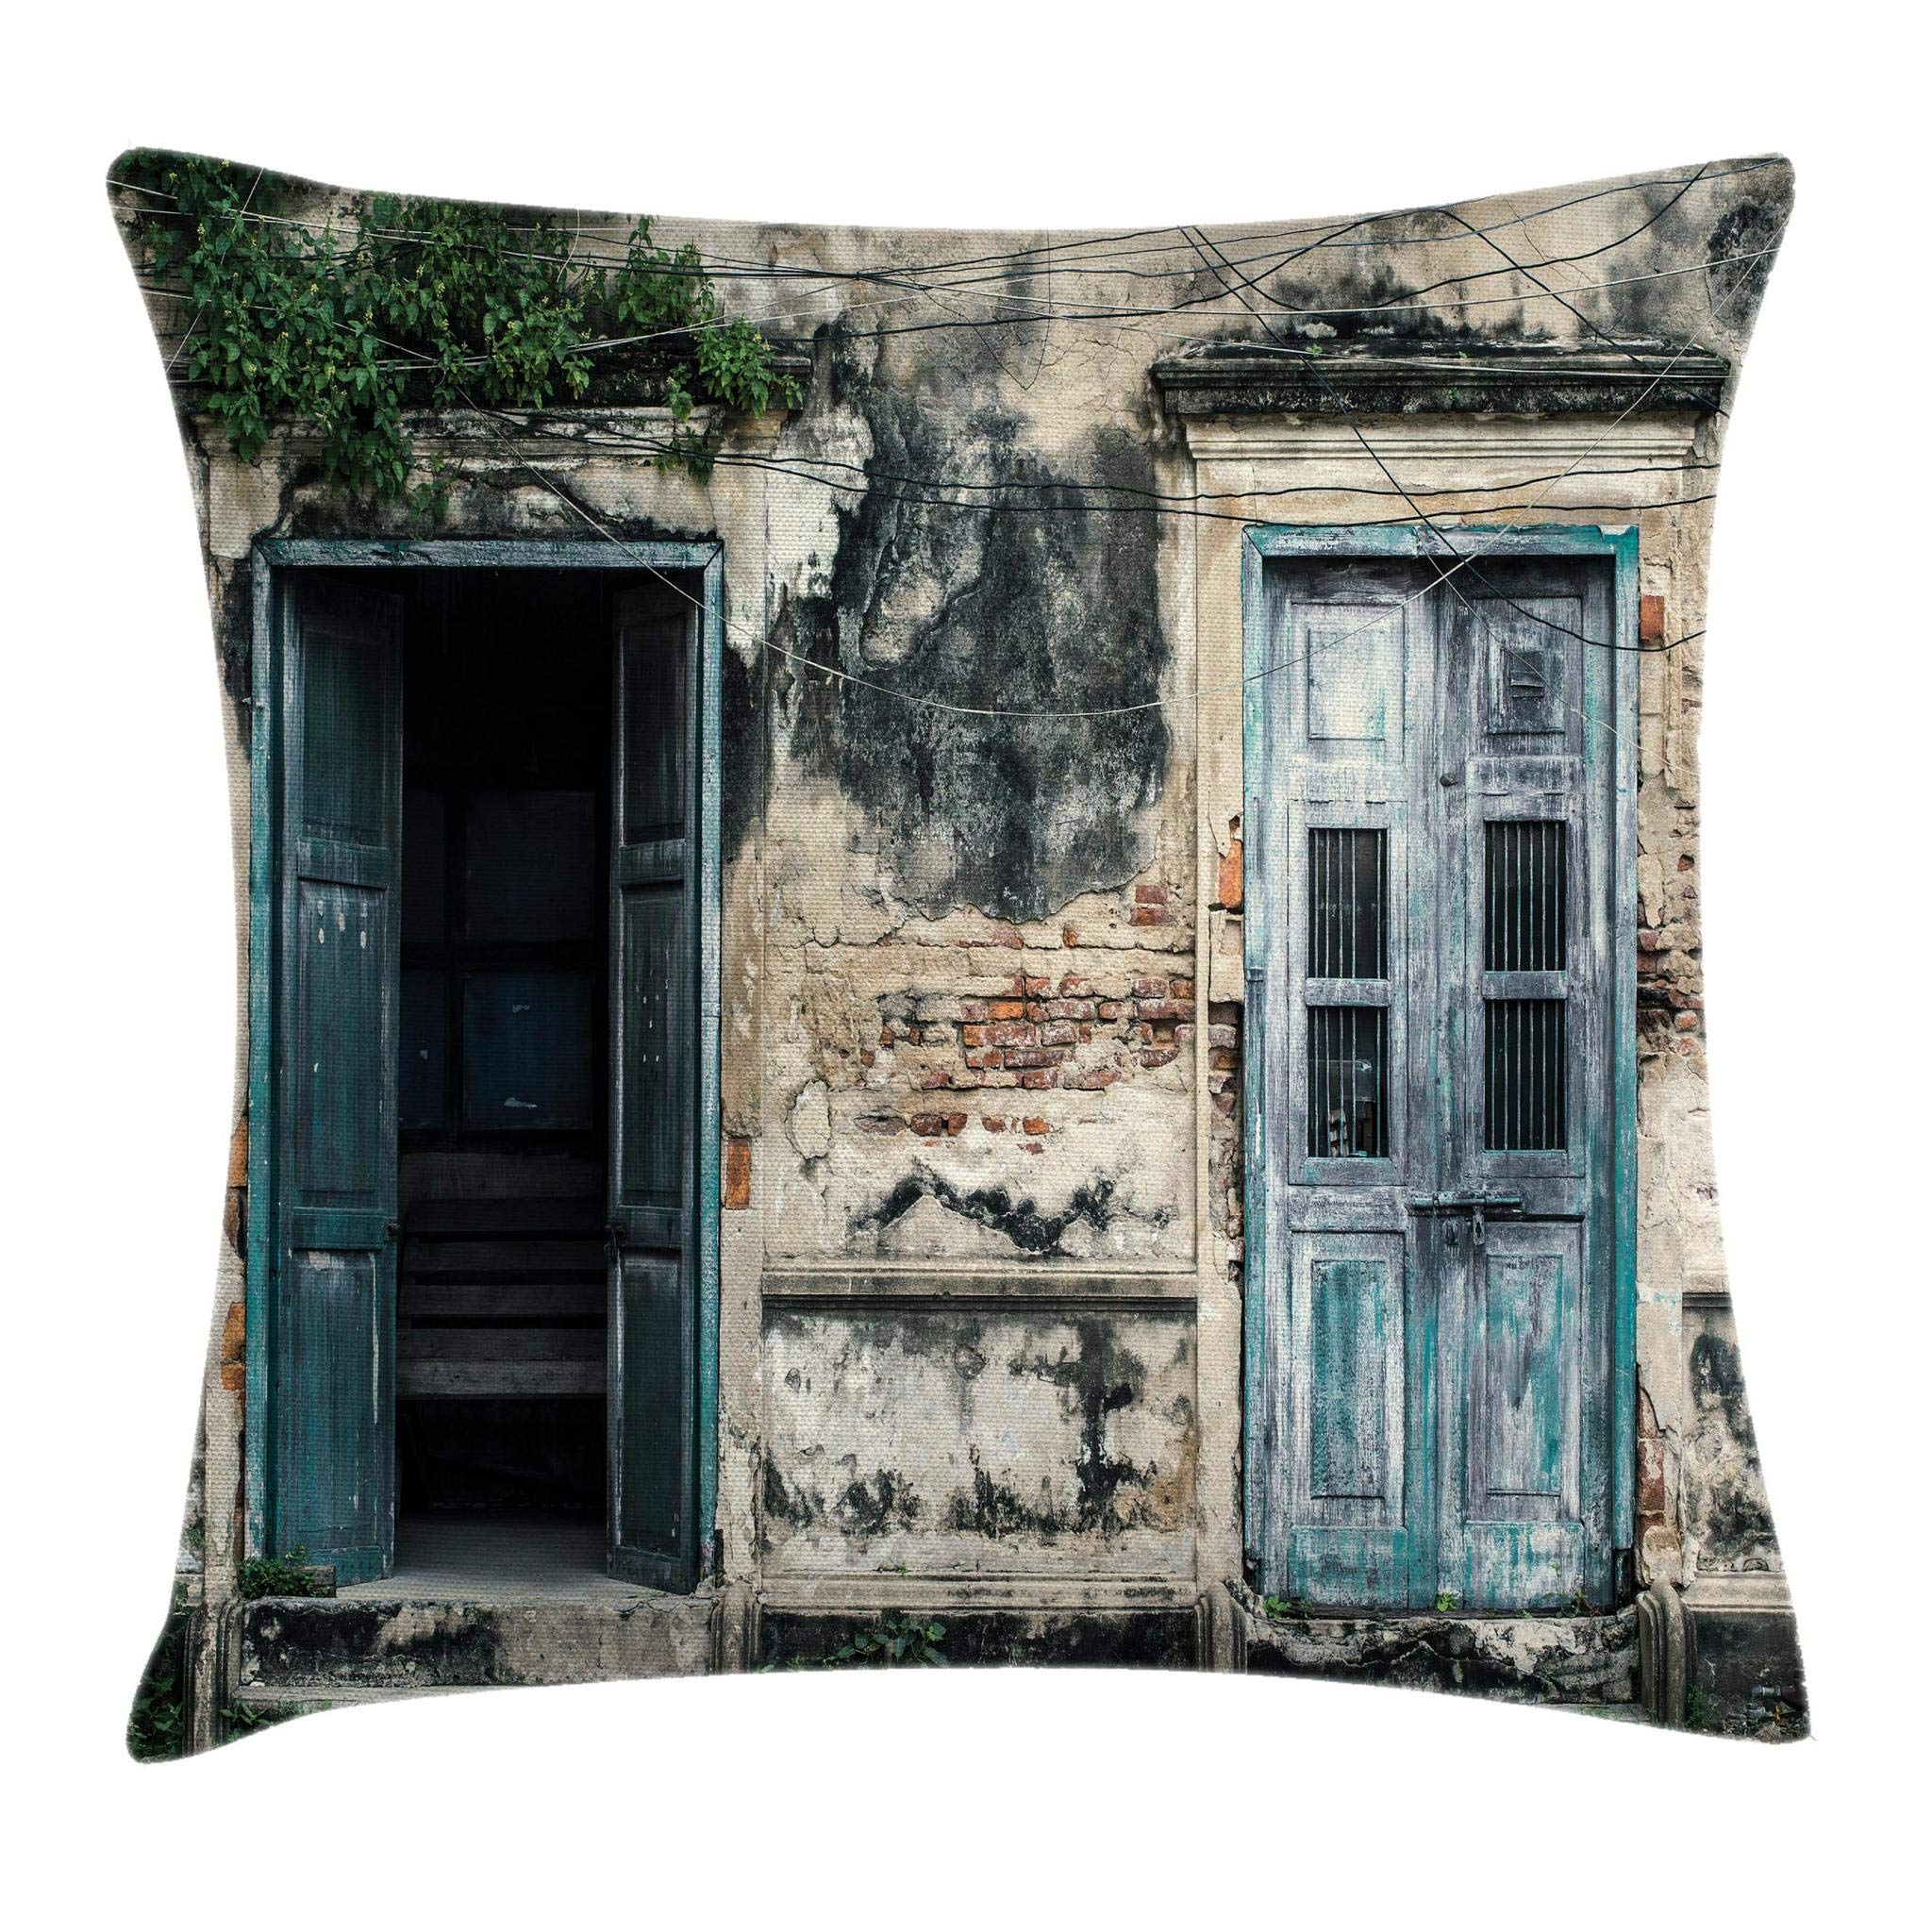 Ambesonne Rustic Throw Pillow Cushion Cover, Doors of Old Rock House with French Frame Details in Countryside European Past Theme, Decorative Square Accent Pillow Case, 20'' X 20'', Teal Grey by Ambesonne